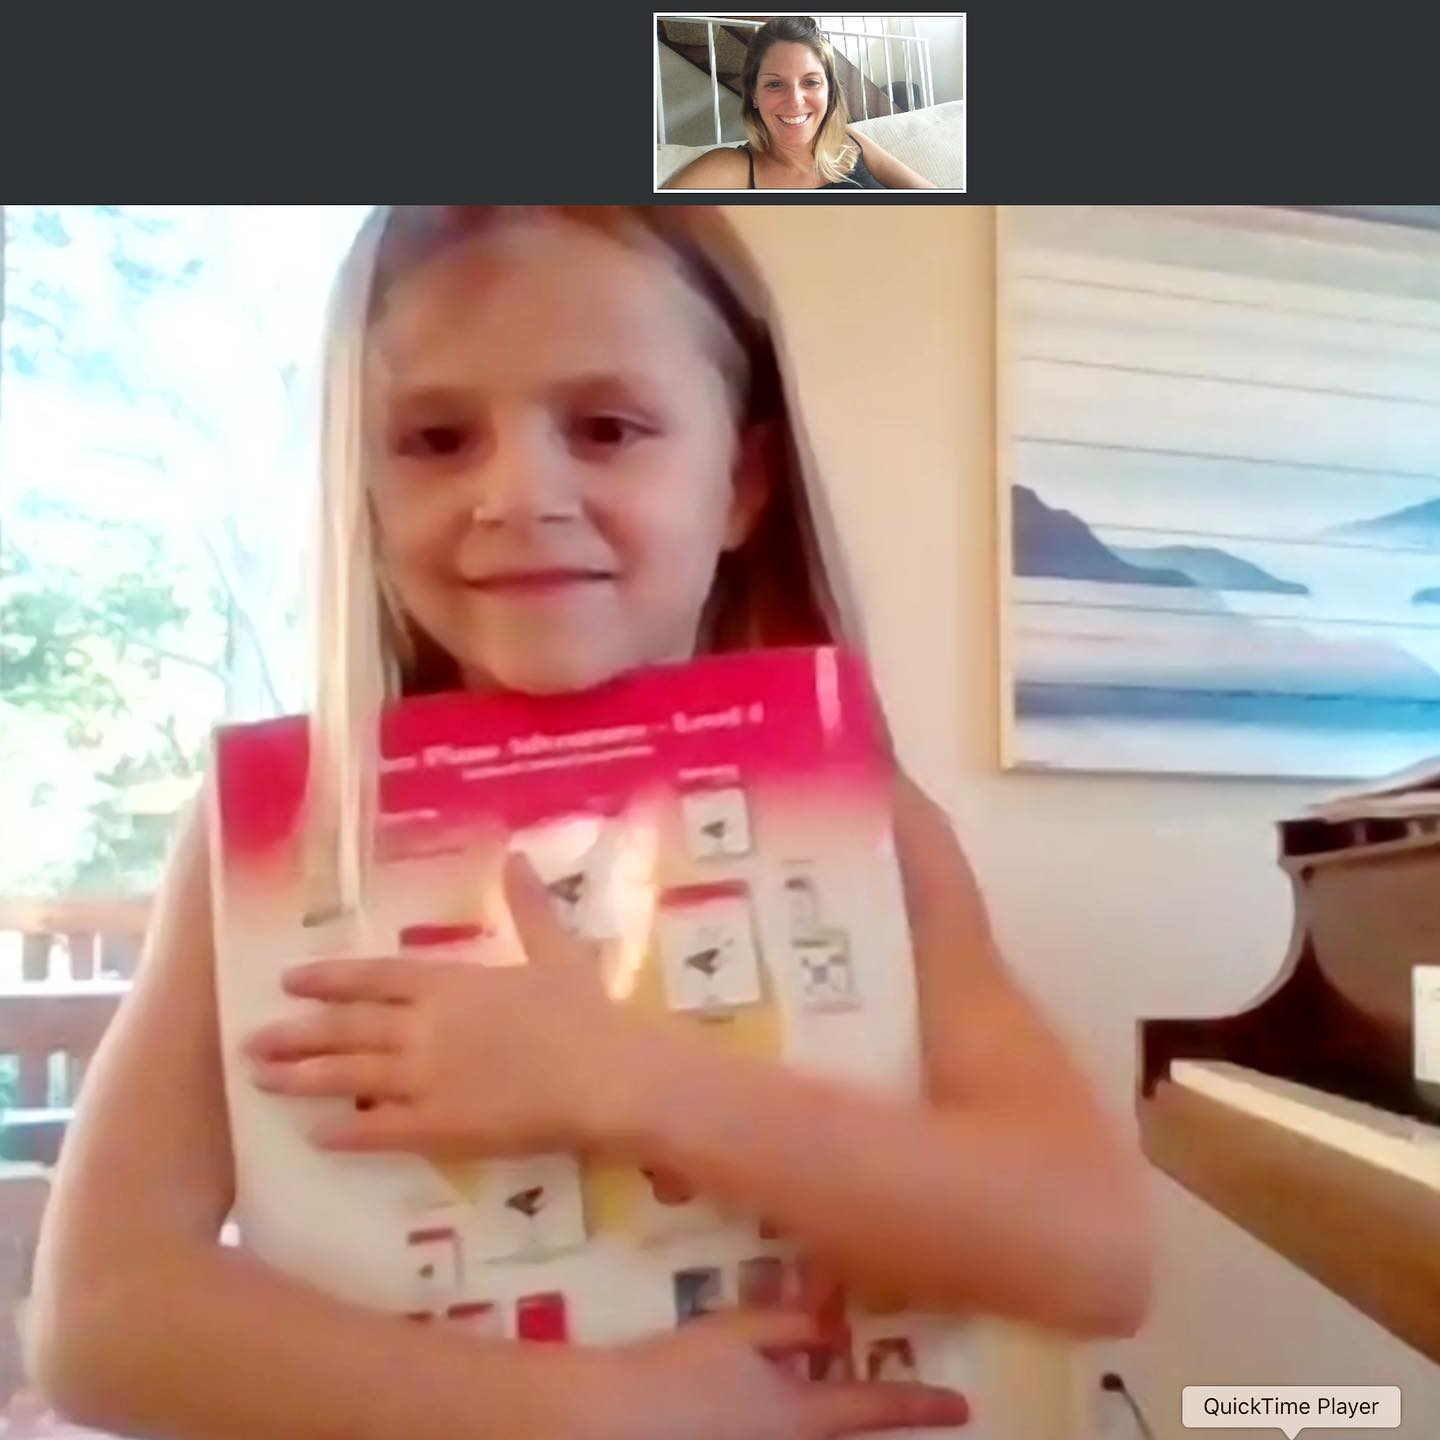 Teagan on Facetime with Tara for virtual piano lessons